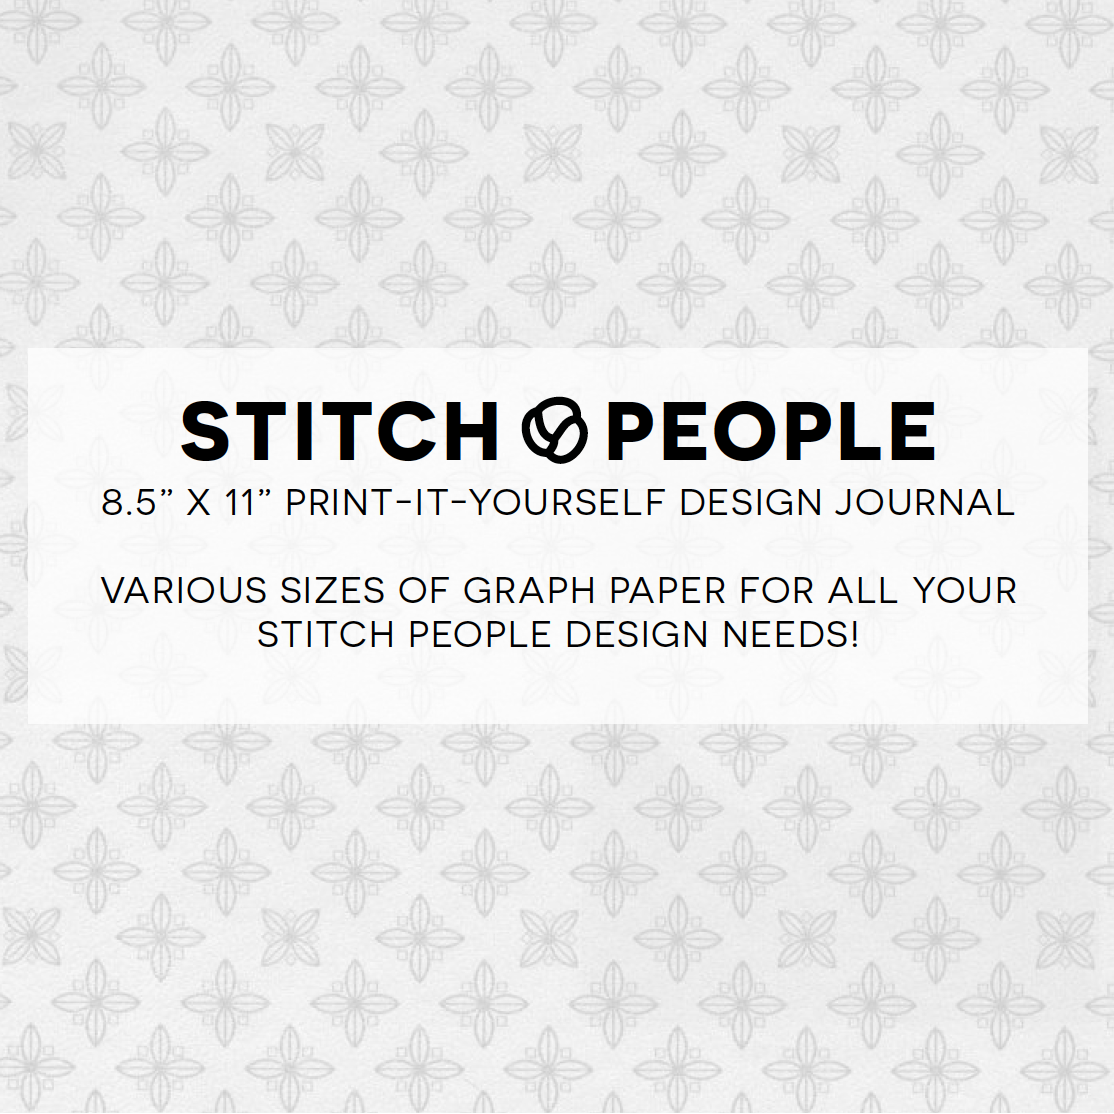 Free Printable Cross Stitch Design Journal Stitch People – Cross Stitch Graph Paper